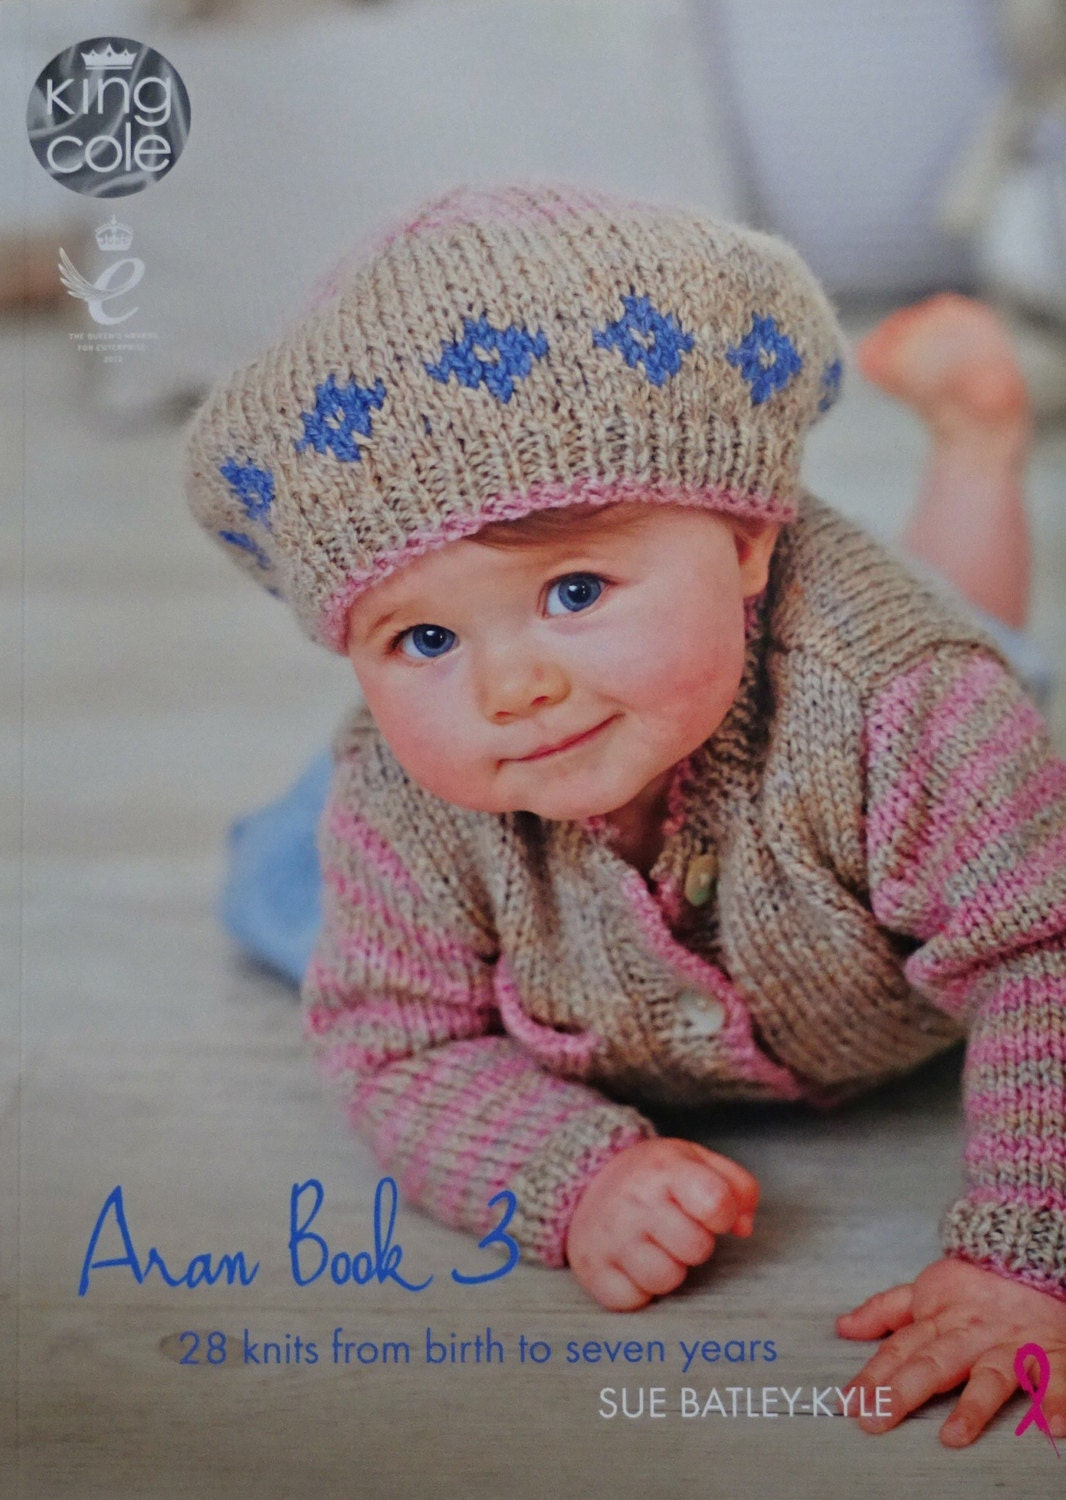 New Baby Knitting Pattern Books : Baby Knitting PATTERN BOOK Baby Aran Knitting Book 3 Knitting